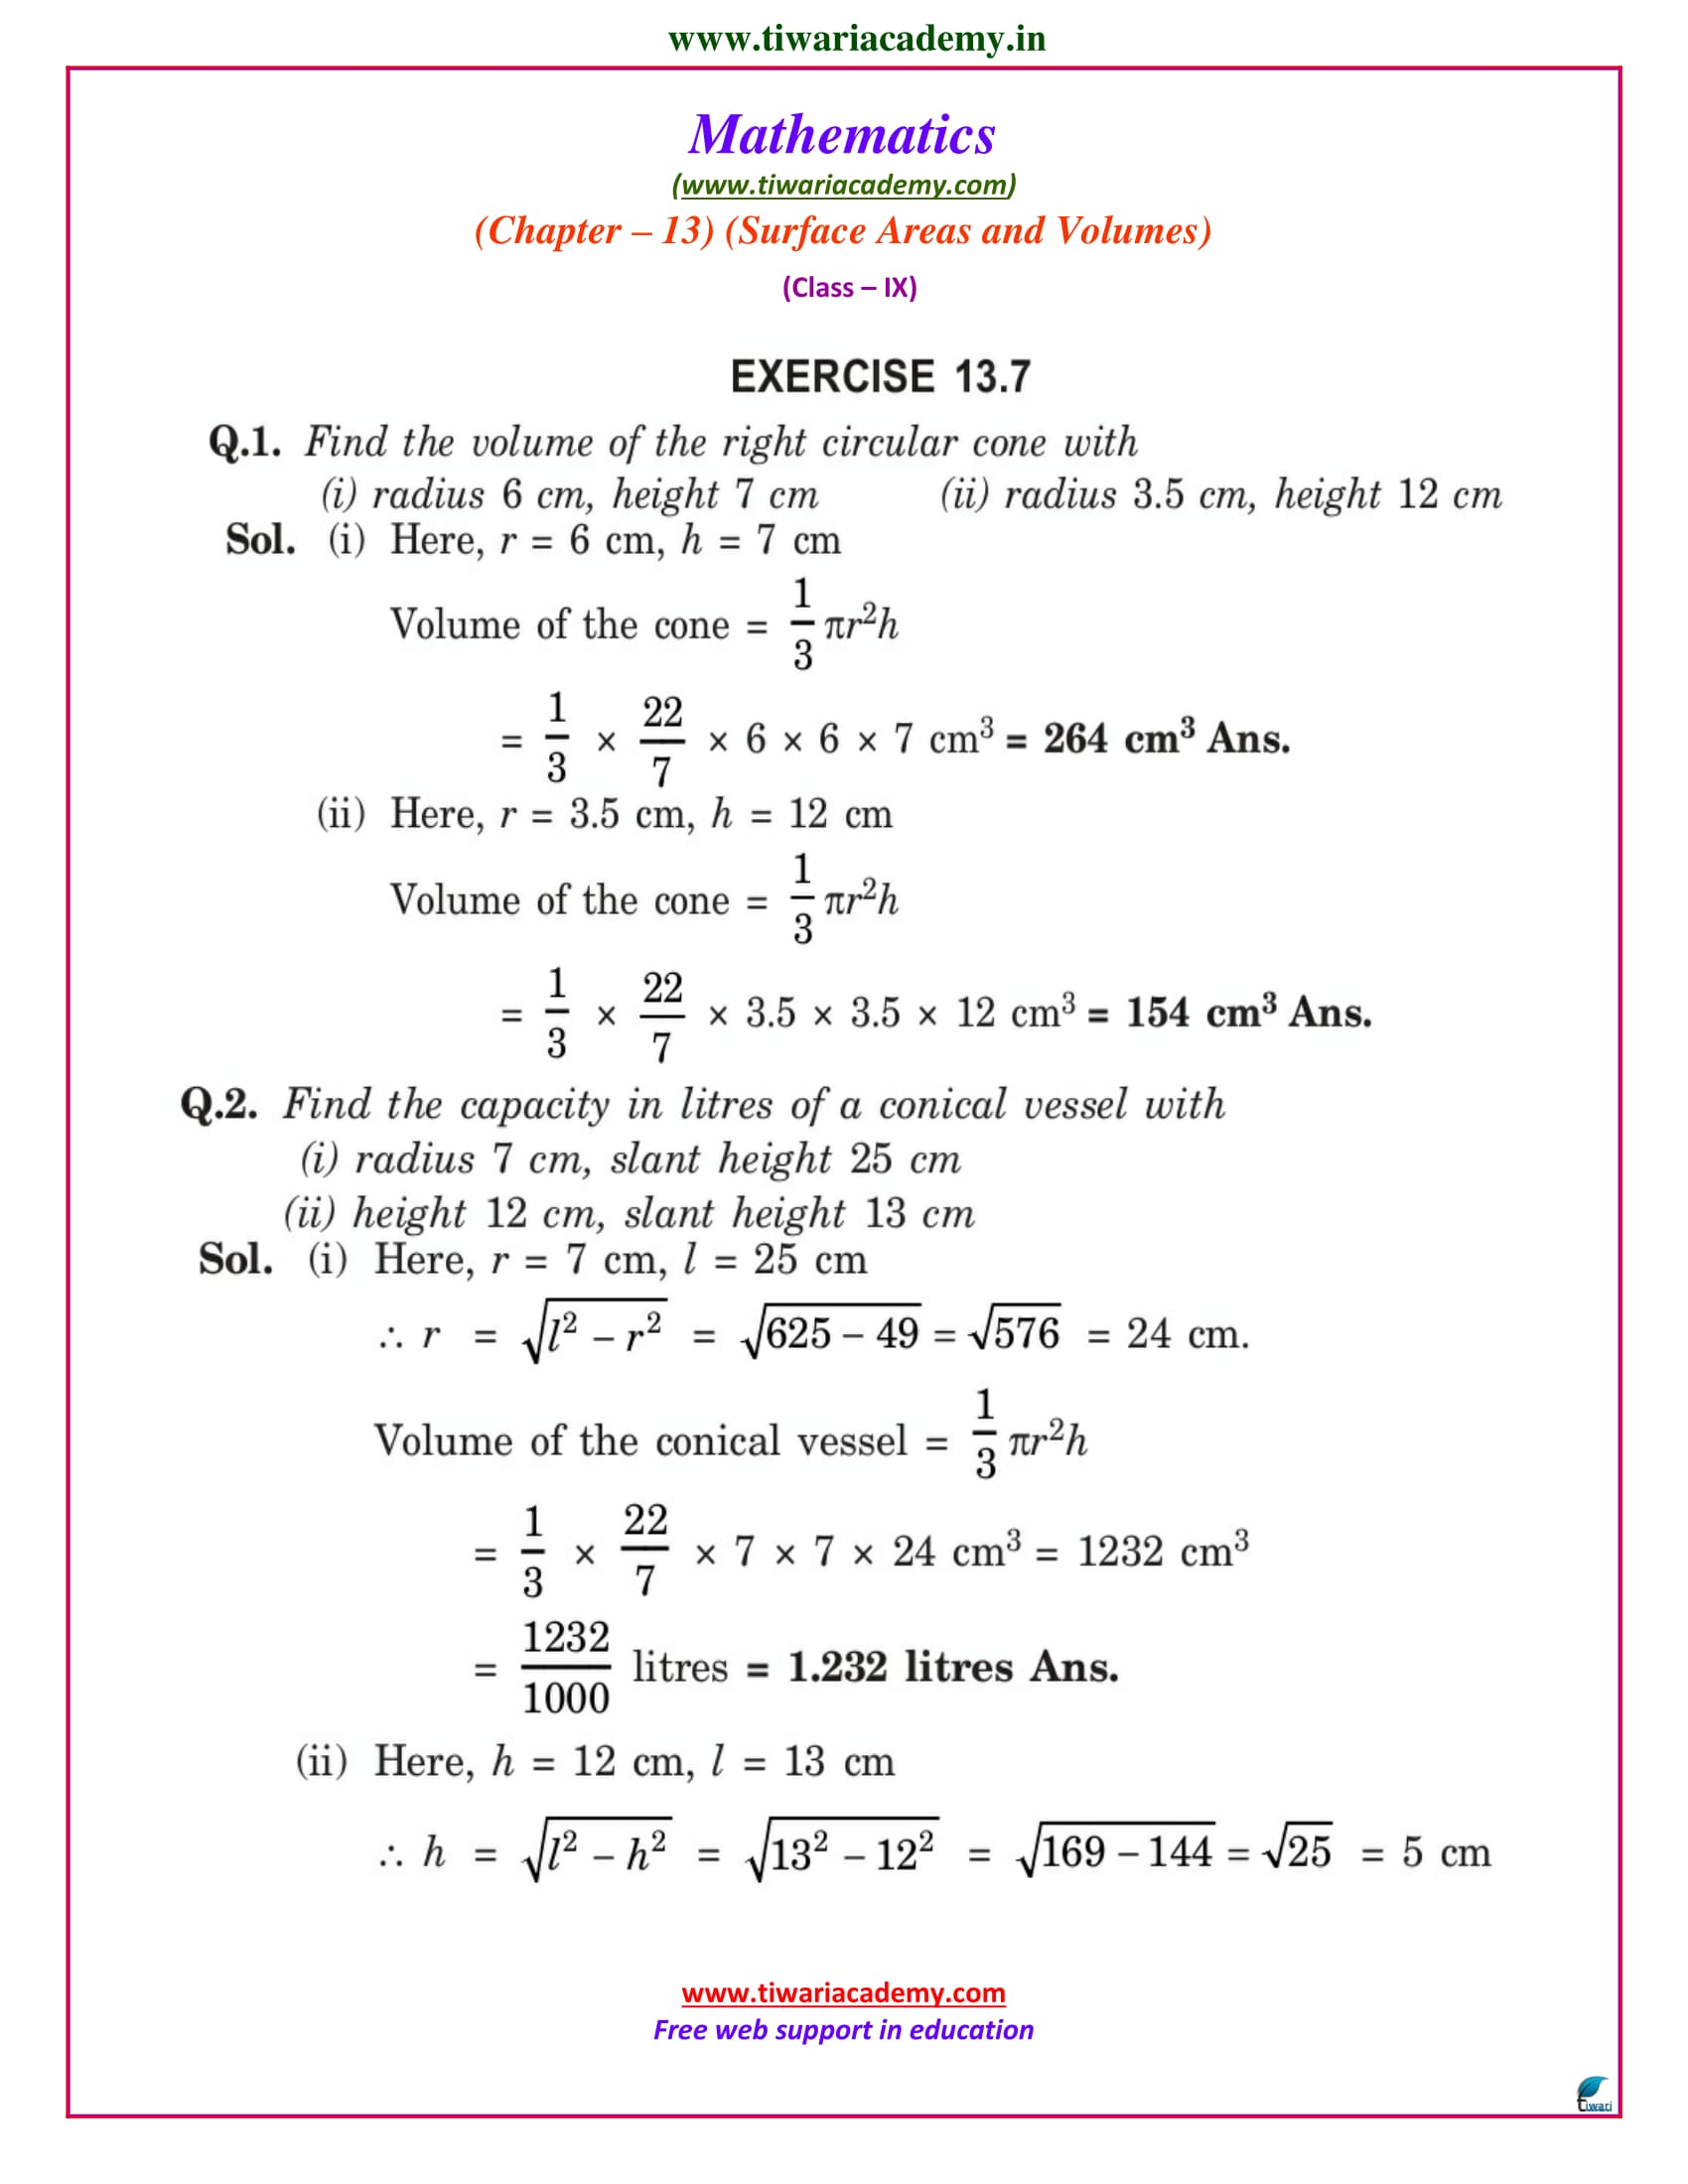 NCERT Solutions for Class 9 Maths Chapter 13 Exercise 13.7